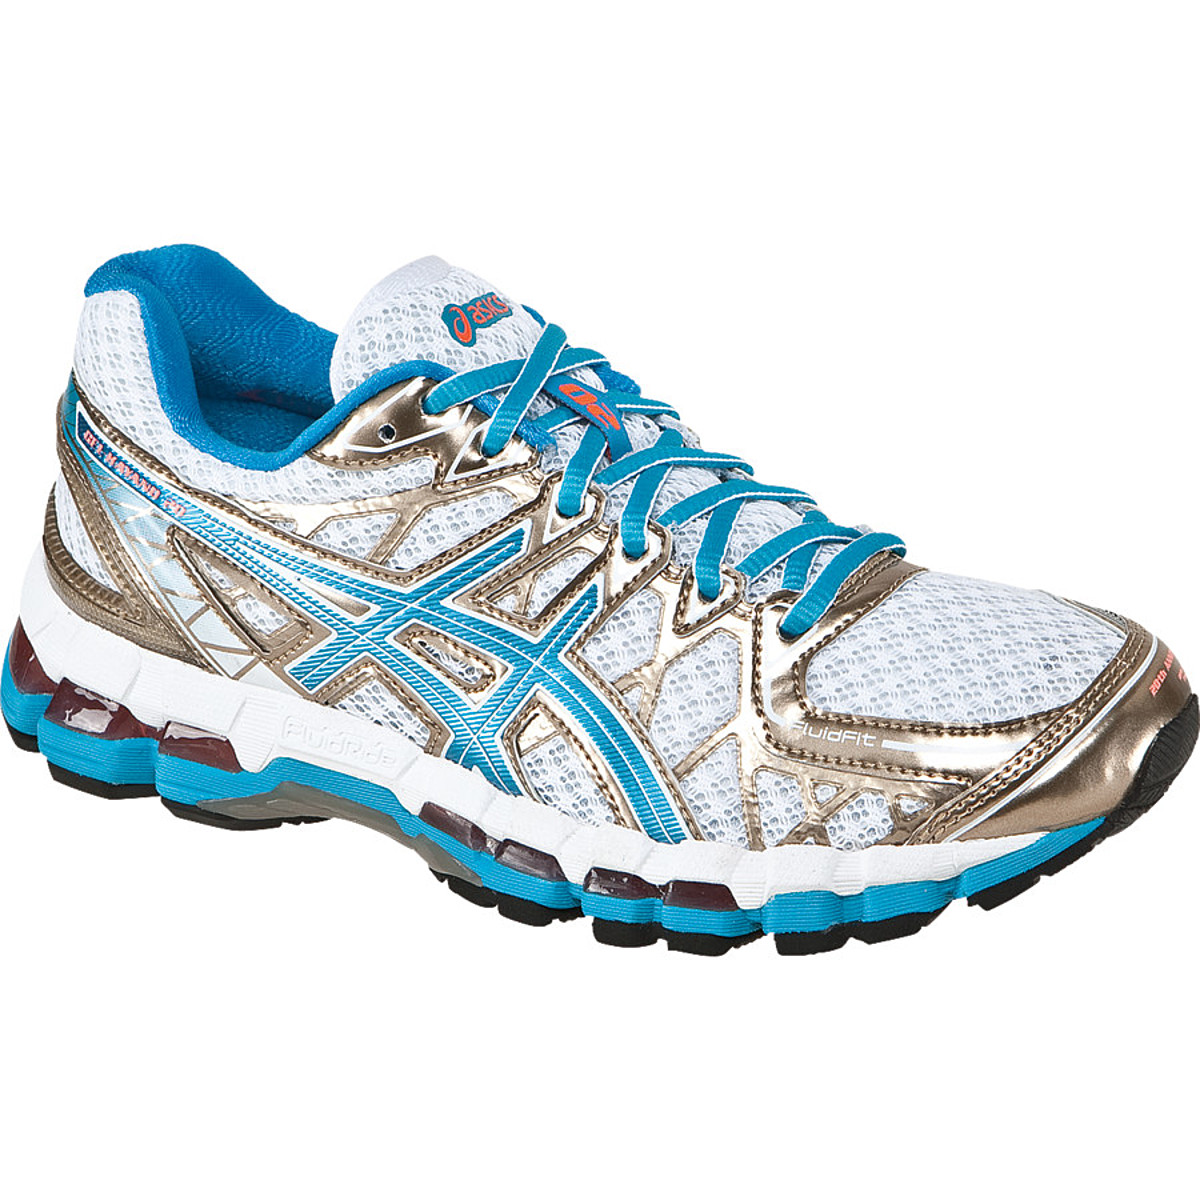 Asics GEL-Kayano 20